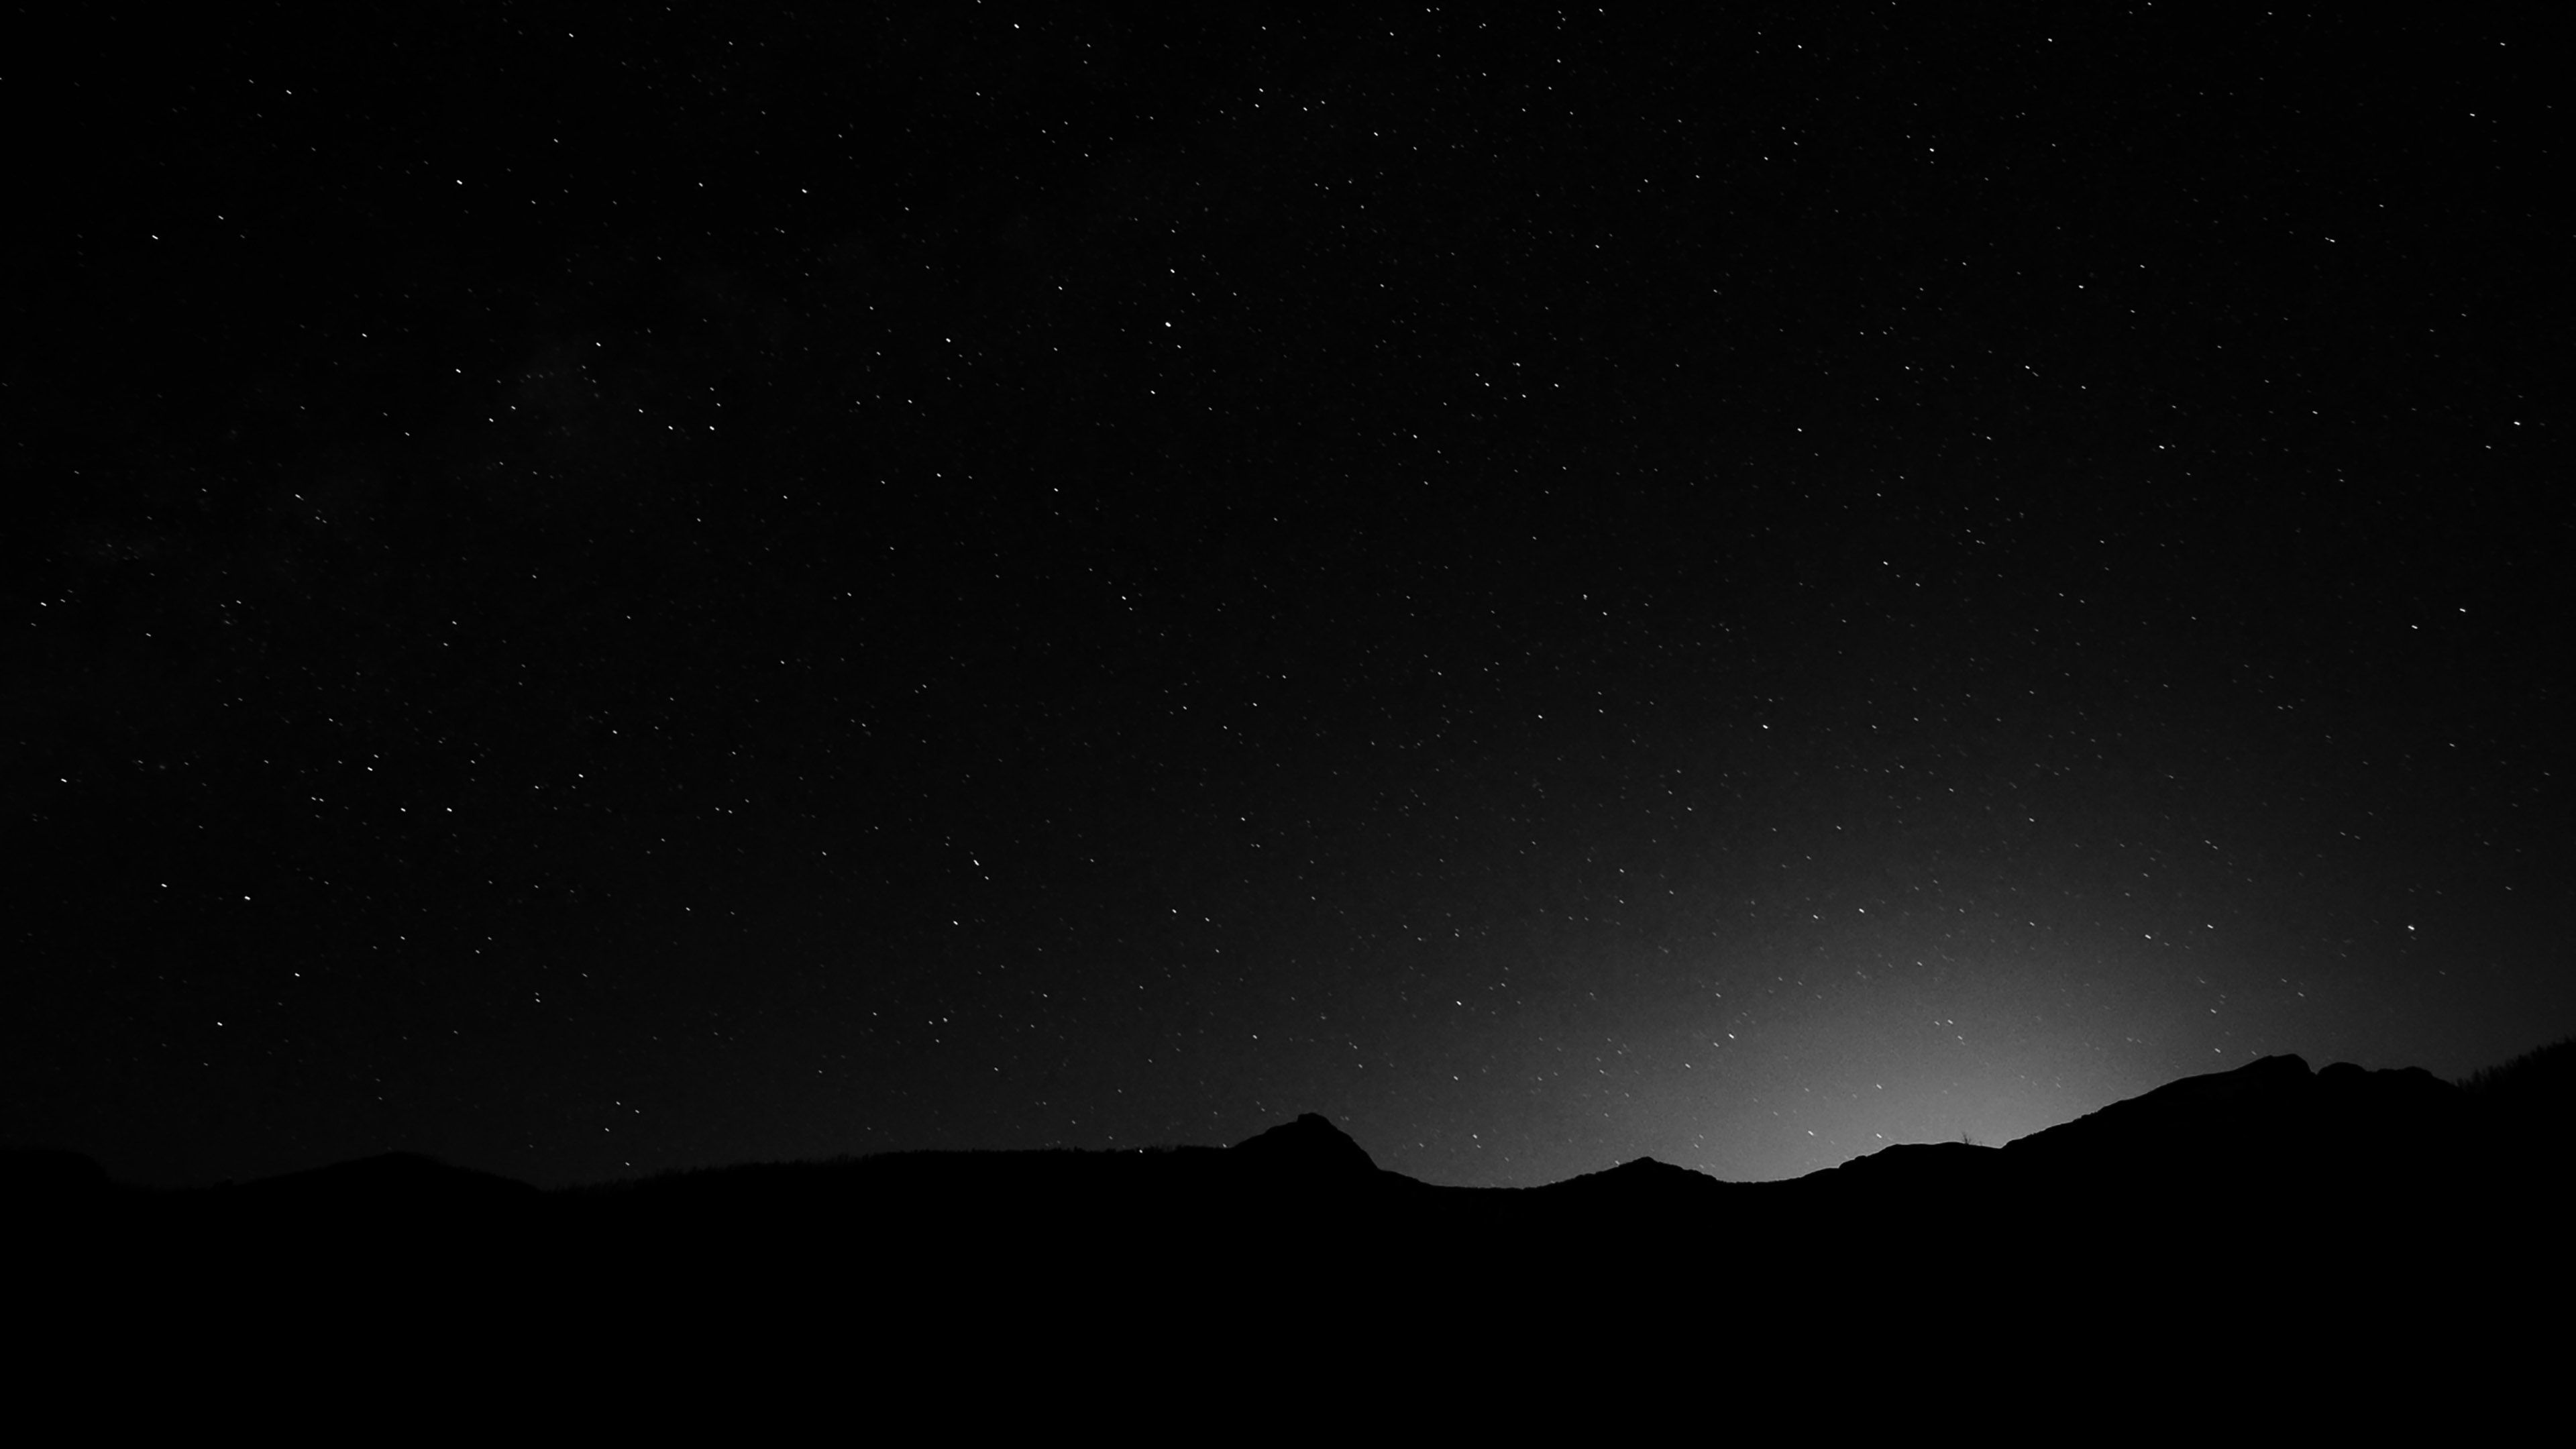 Night Sky Stars Wallpapers - Wallpaper Cave | Android ...